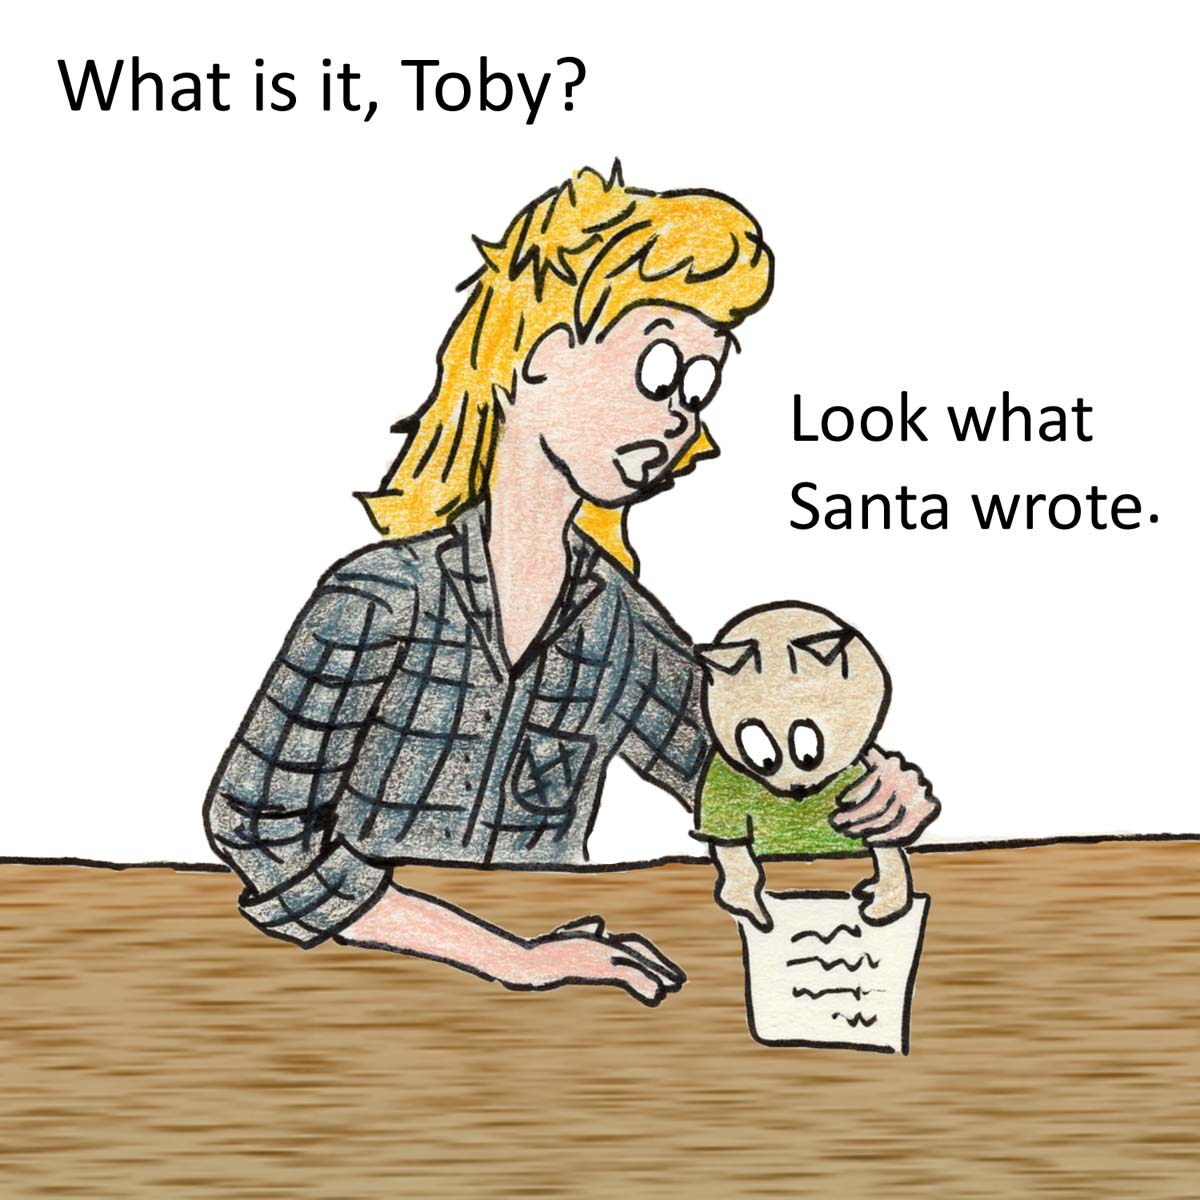 What is it, Toby? Look what Santa wrote.